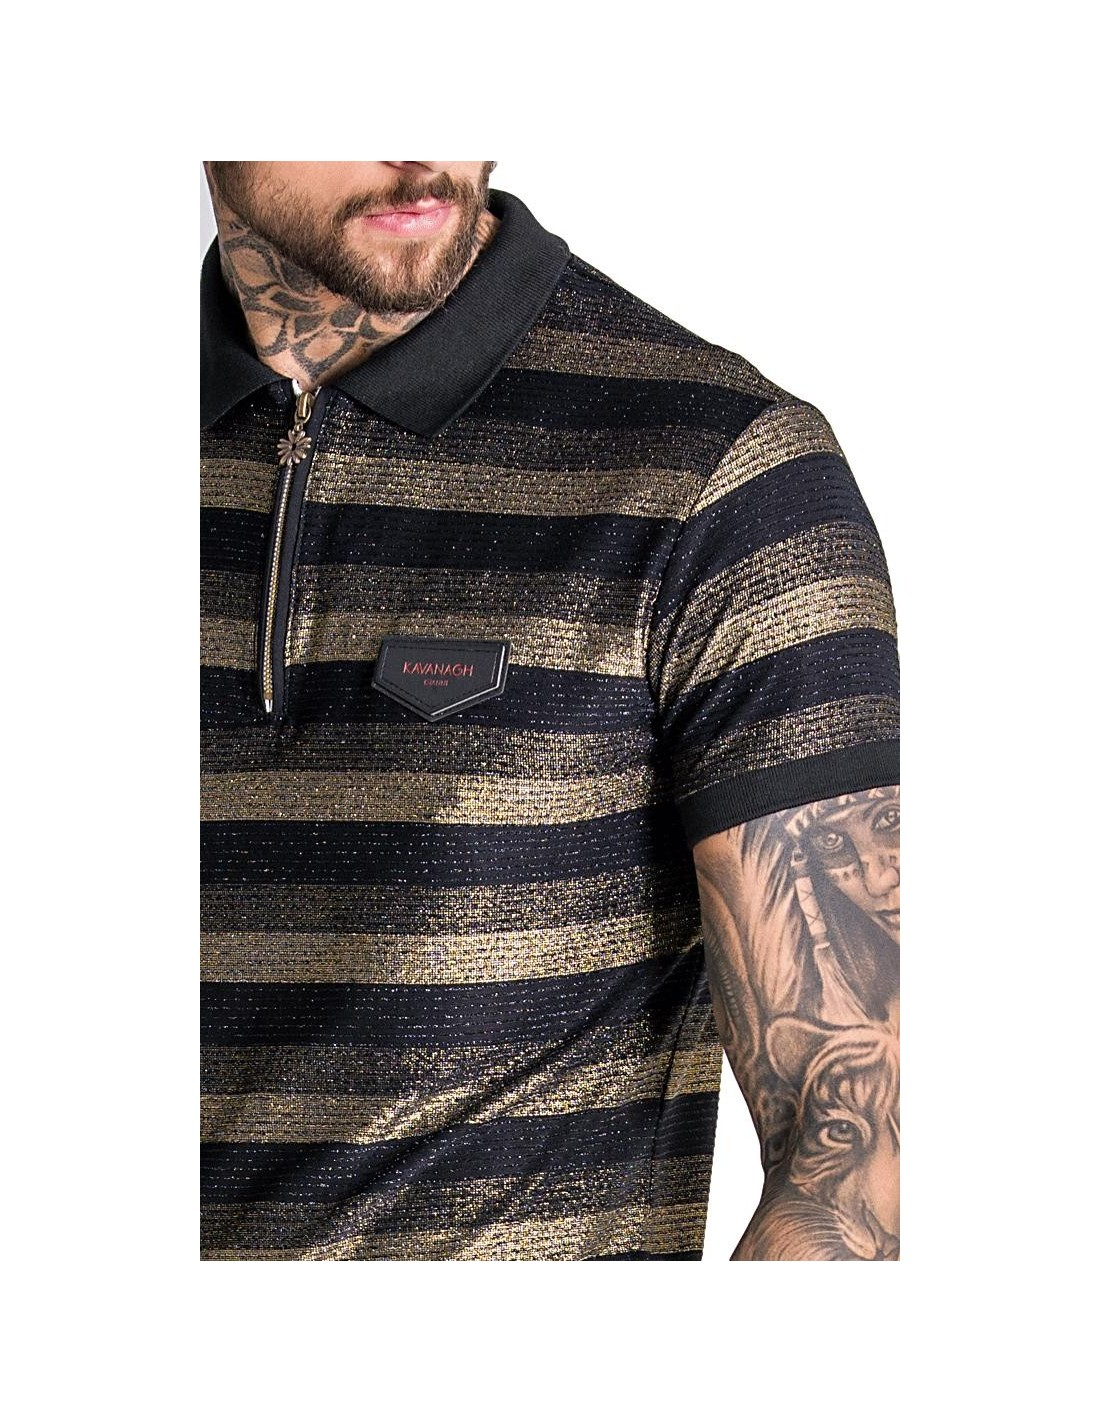 T-shirt Gianni Kavanagh black stripes with logo embroidery